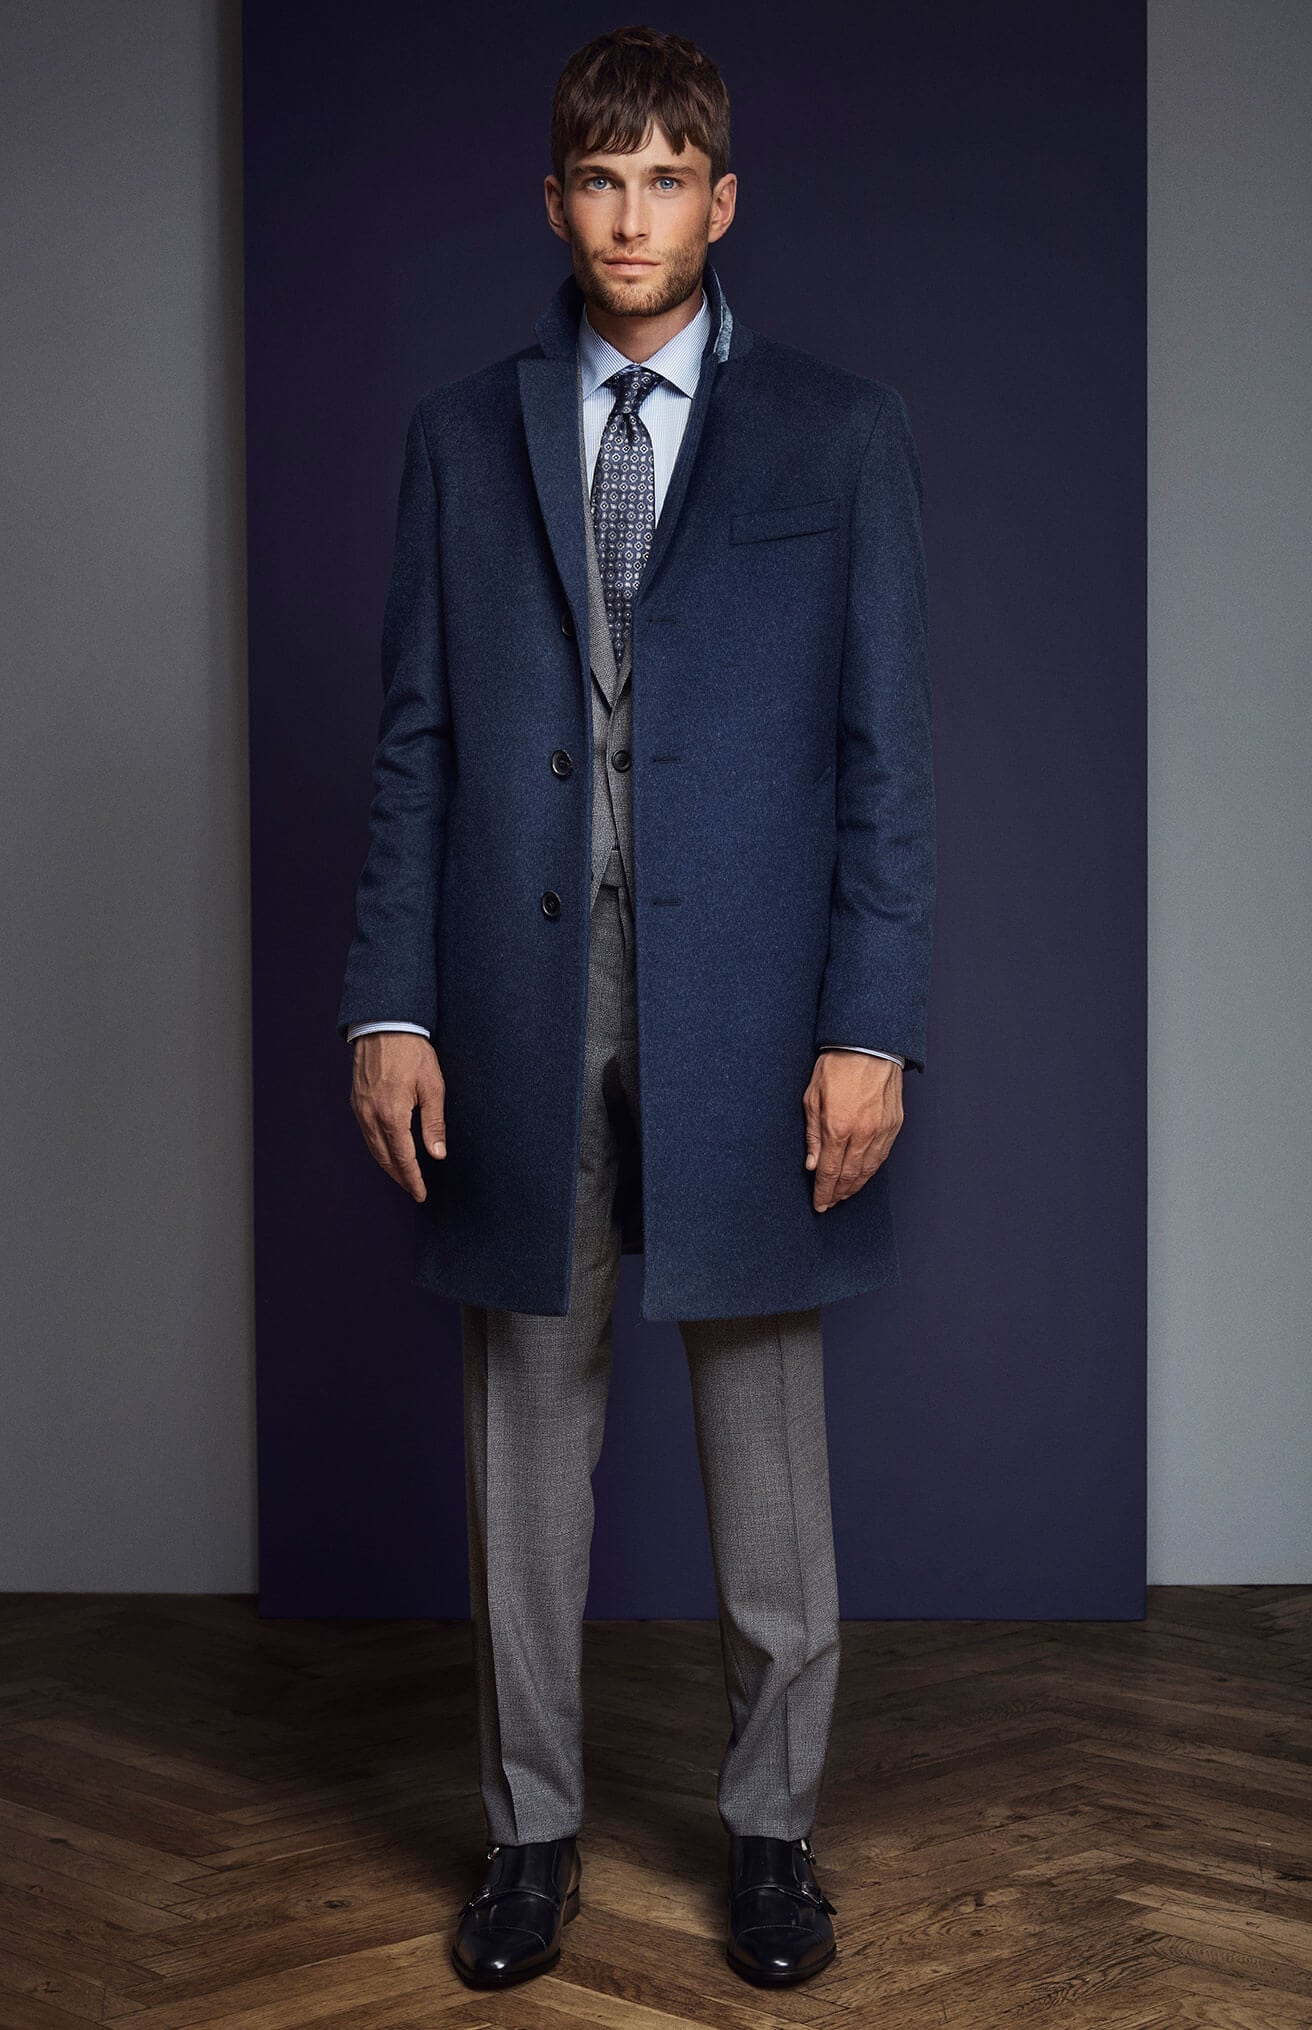 SUIT_STYLING_2